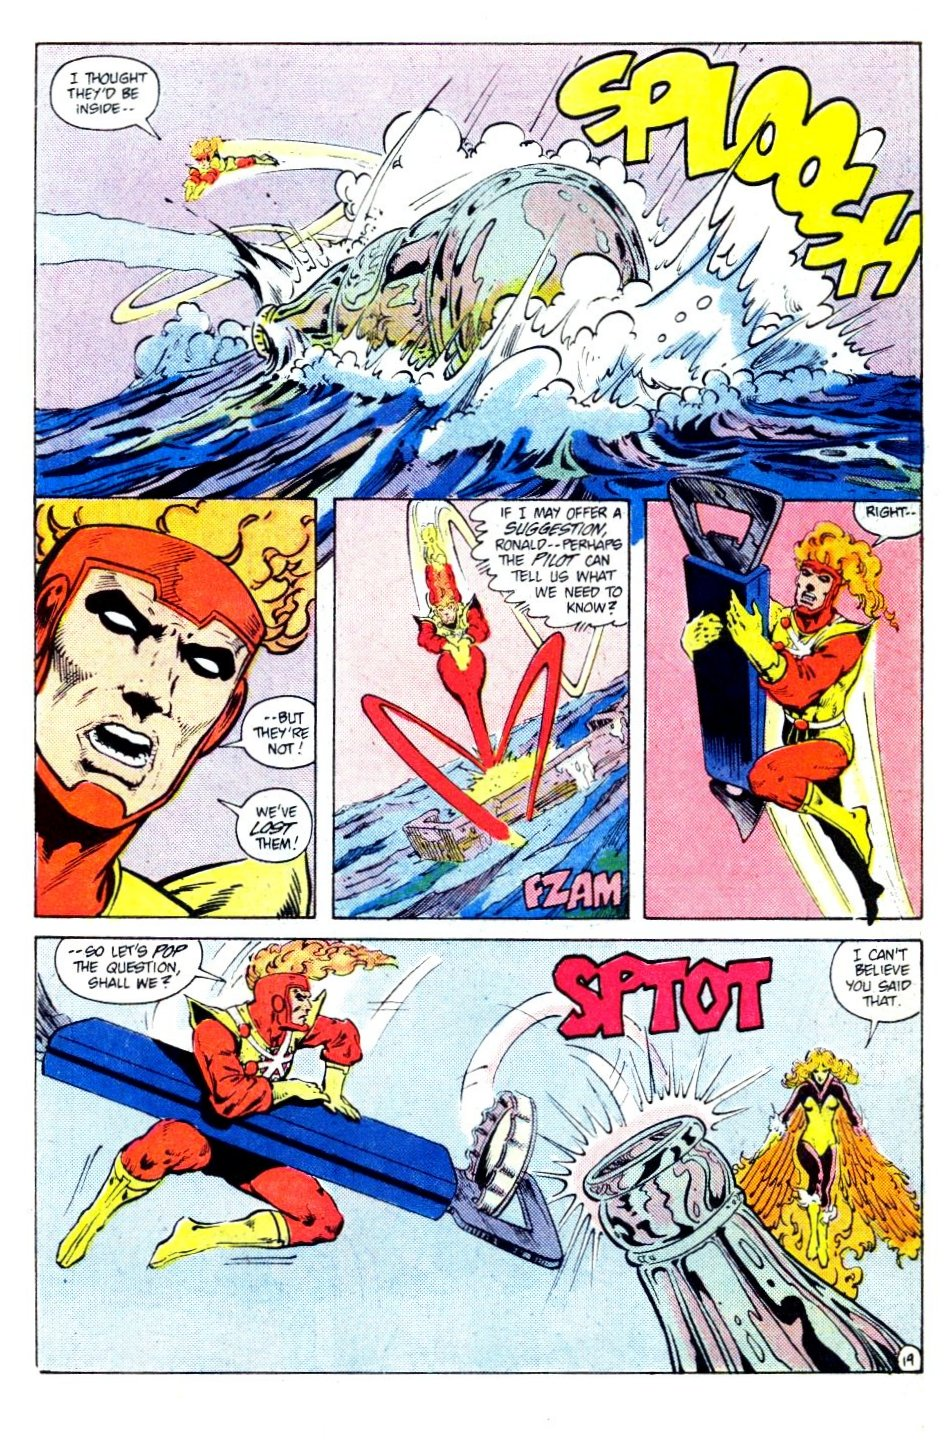 Fury of Firestorm #26